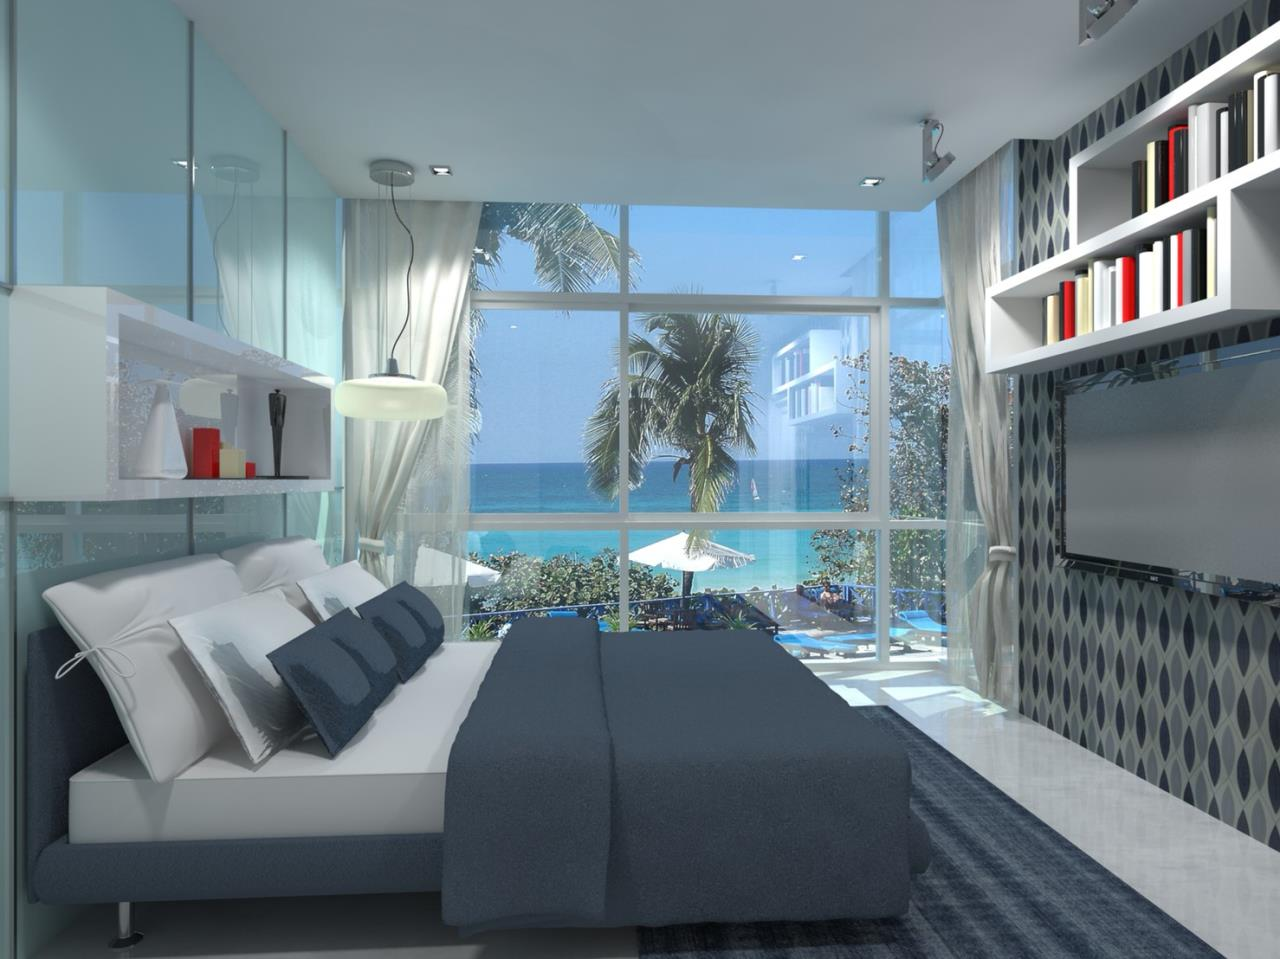 Signature Realty ( Thailand ) Co Ltd Agency's Furnished 1bedroom 46 sq.m condo with jacuzzi floor 21-31 at The Grand Jomtein Beach Pattaya 26